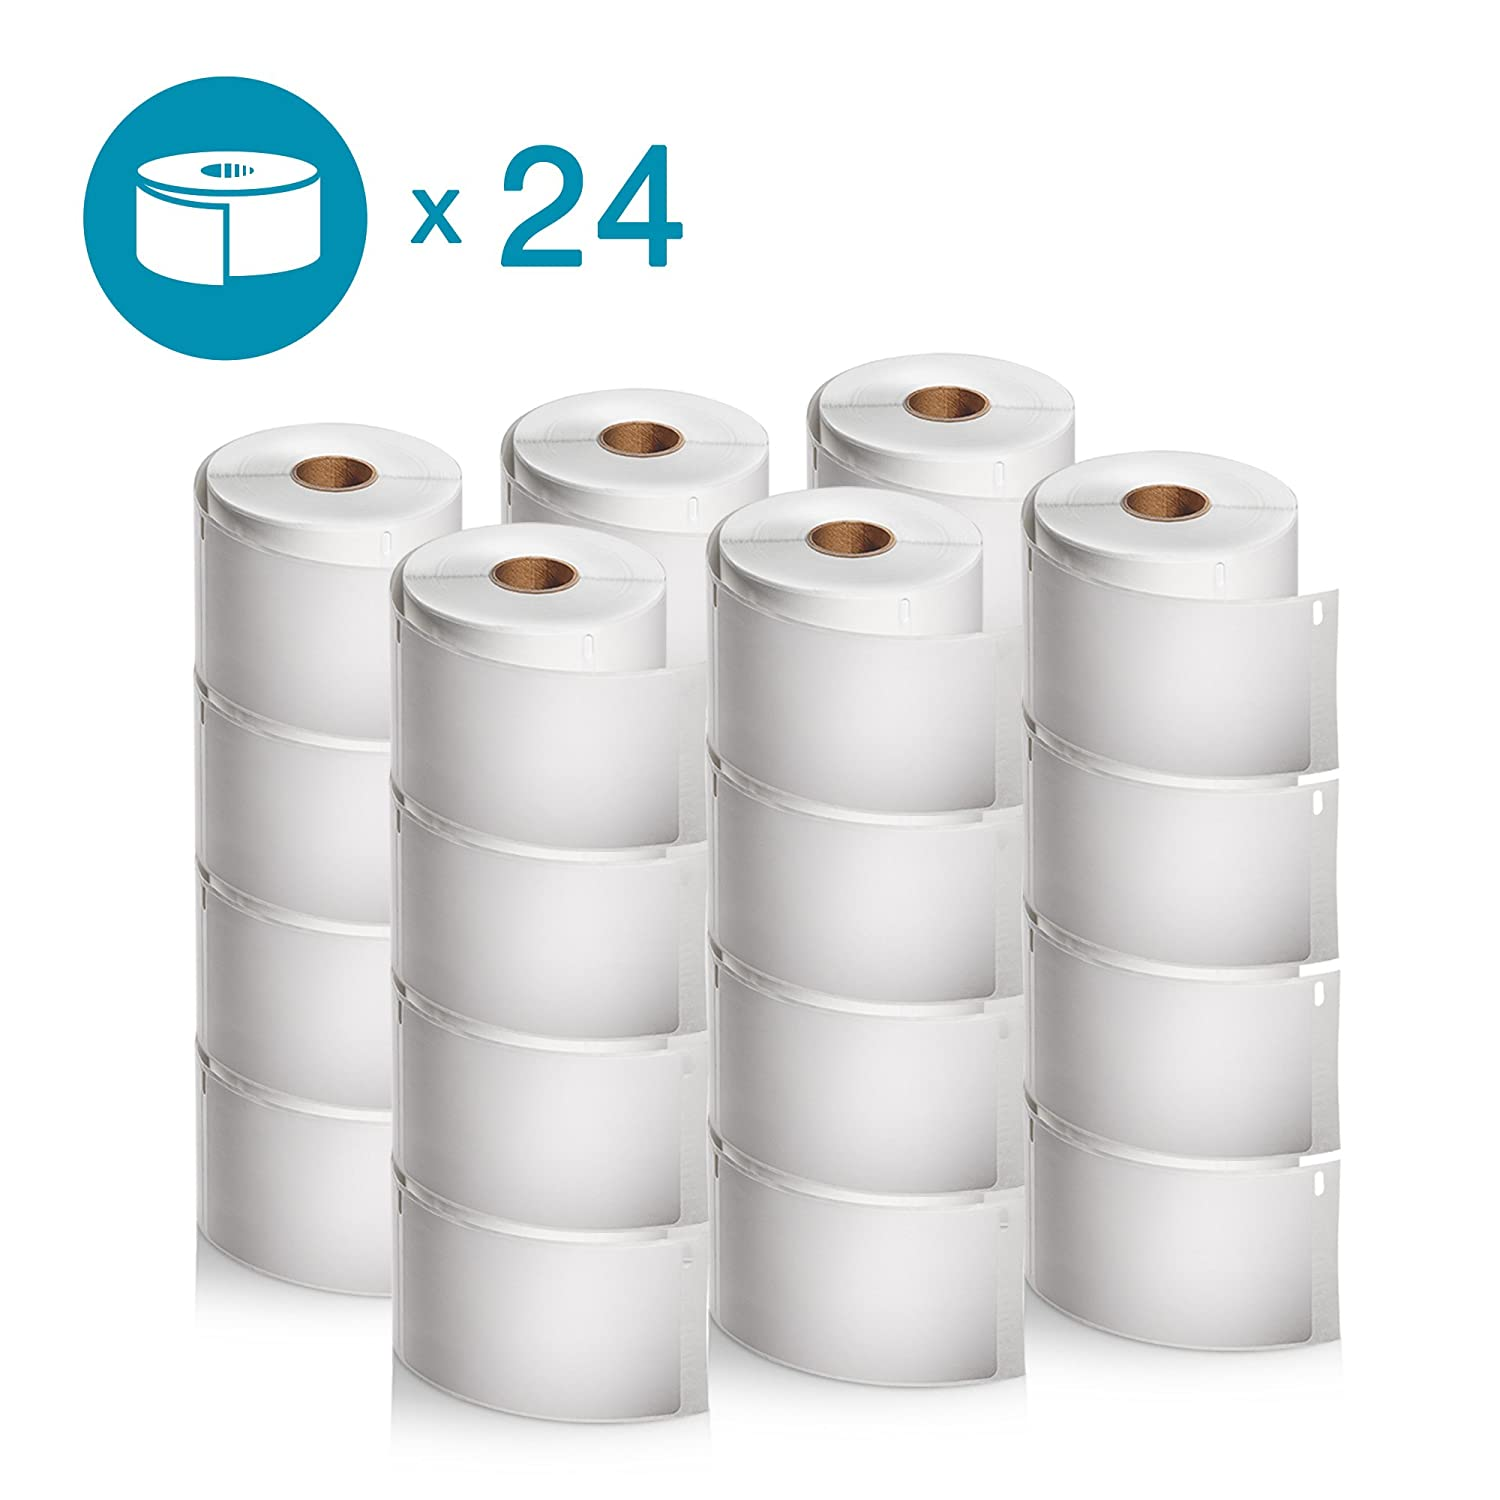 DYMO Authentic LabelWriter Standard Shipping Labels for LabelWriter Label Printers (30256), Weiß, 2-5 16'' x 4'', 24 rolls of 300